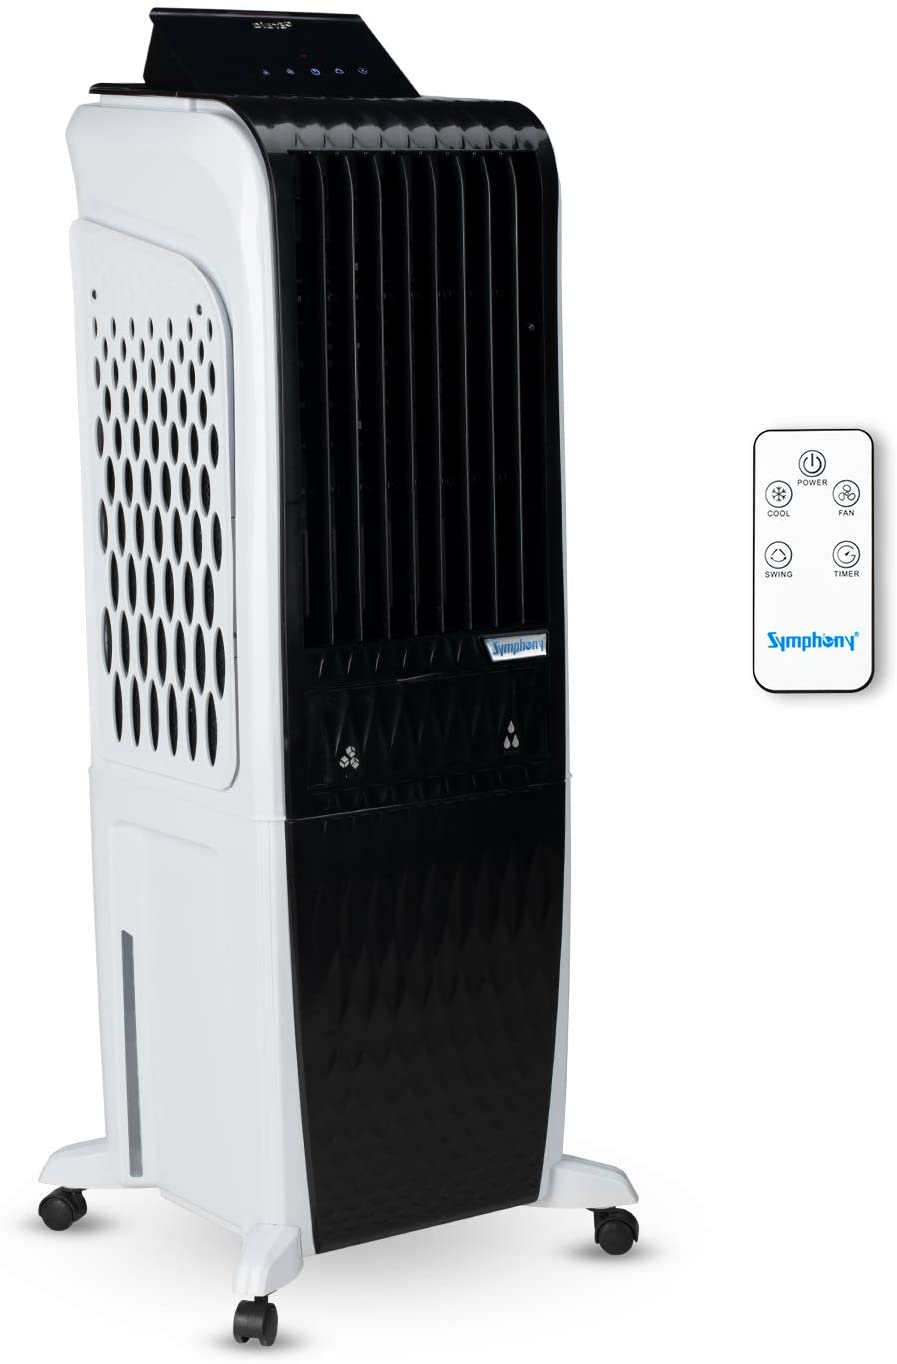 Symphony Diet 3D – 30i Personal Tower Air Cooler 30-litres with Magnetic Remote, 3-Side Cooling Pads, Pop-up Touchscreen, Multistage Air Purification & Low Power Consumption (Black & White)